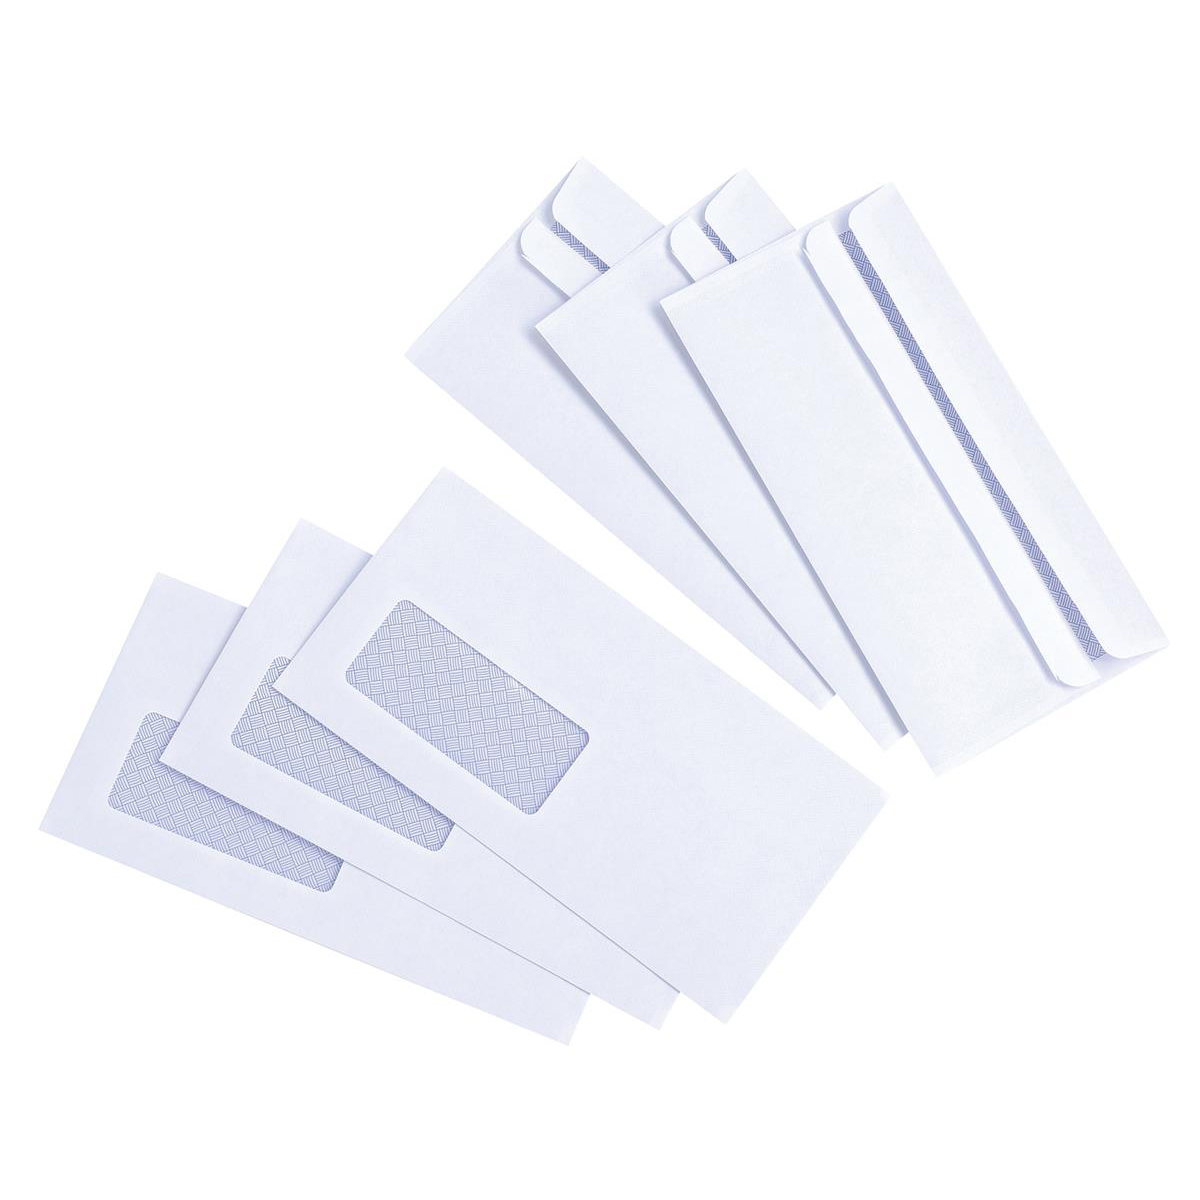 5 Star Value Envelopes Wallet Press Seal Window 80gsm DL 110x220mm White Pack 1000